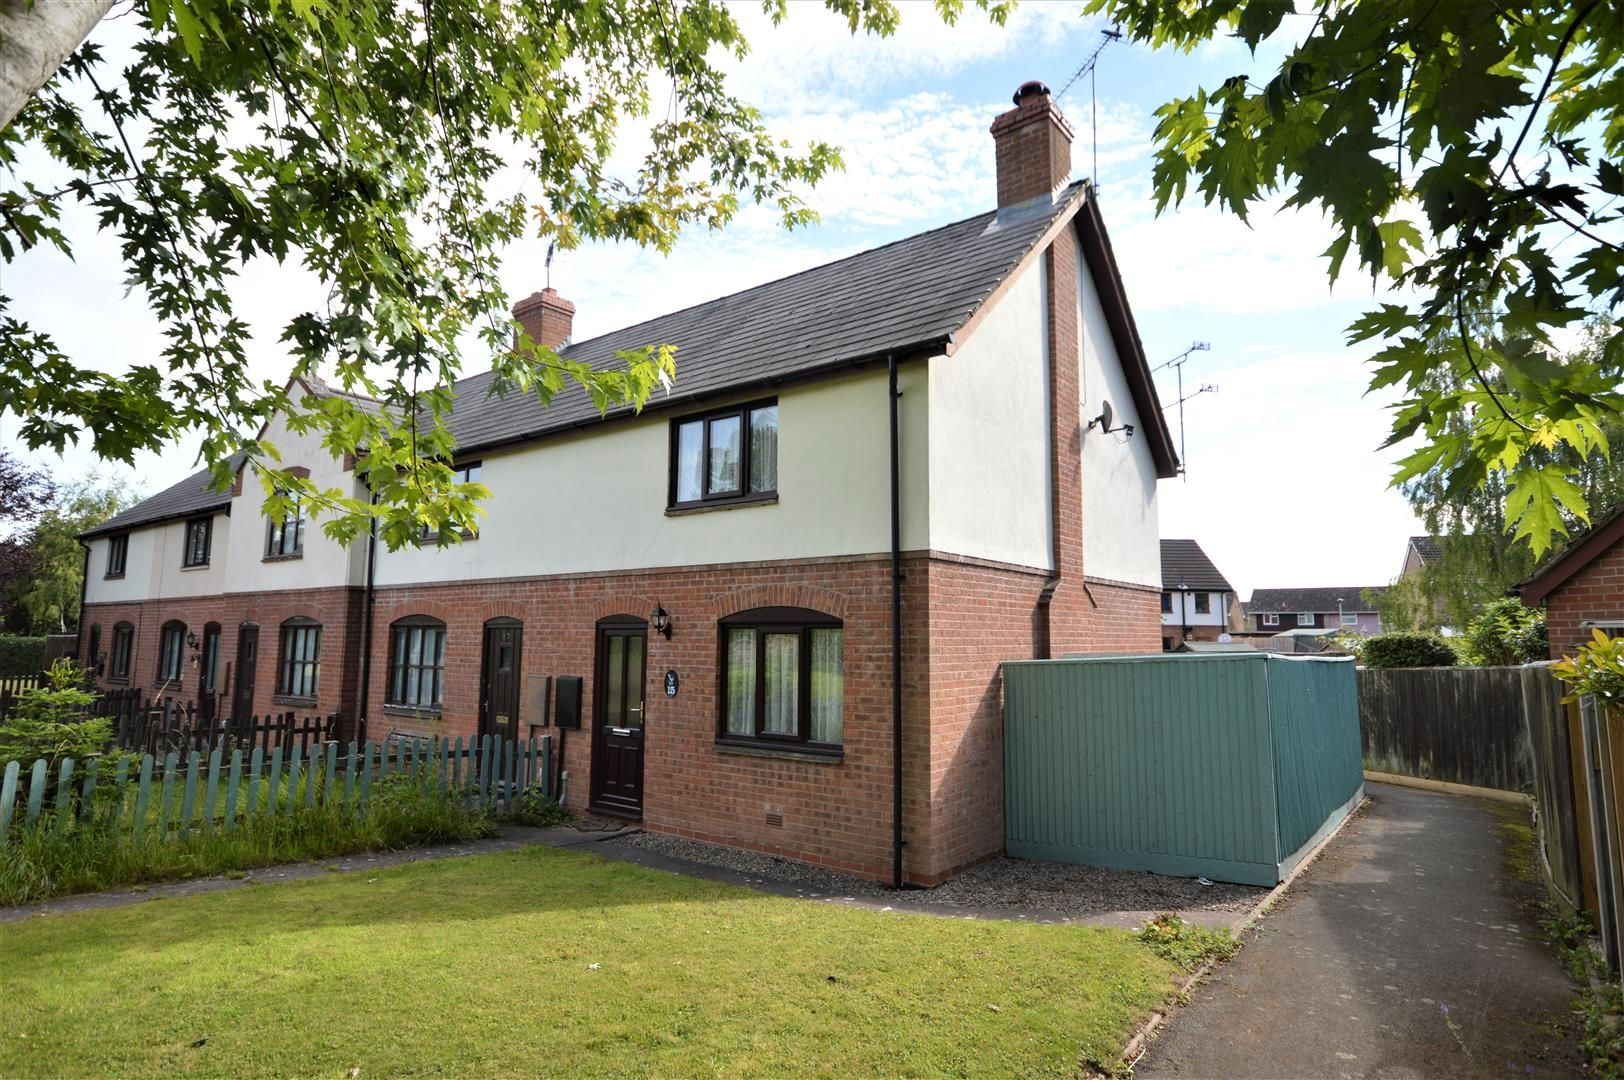 2 bed end-of-terrace for sale in Leominster  - Property Image 1